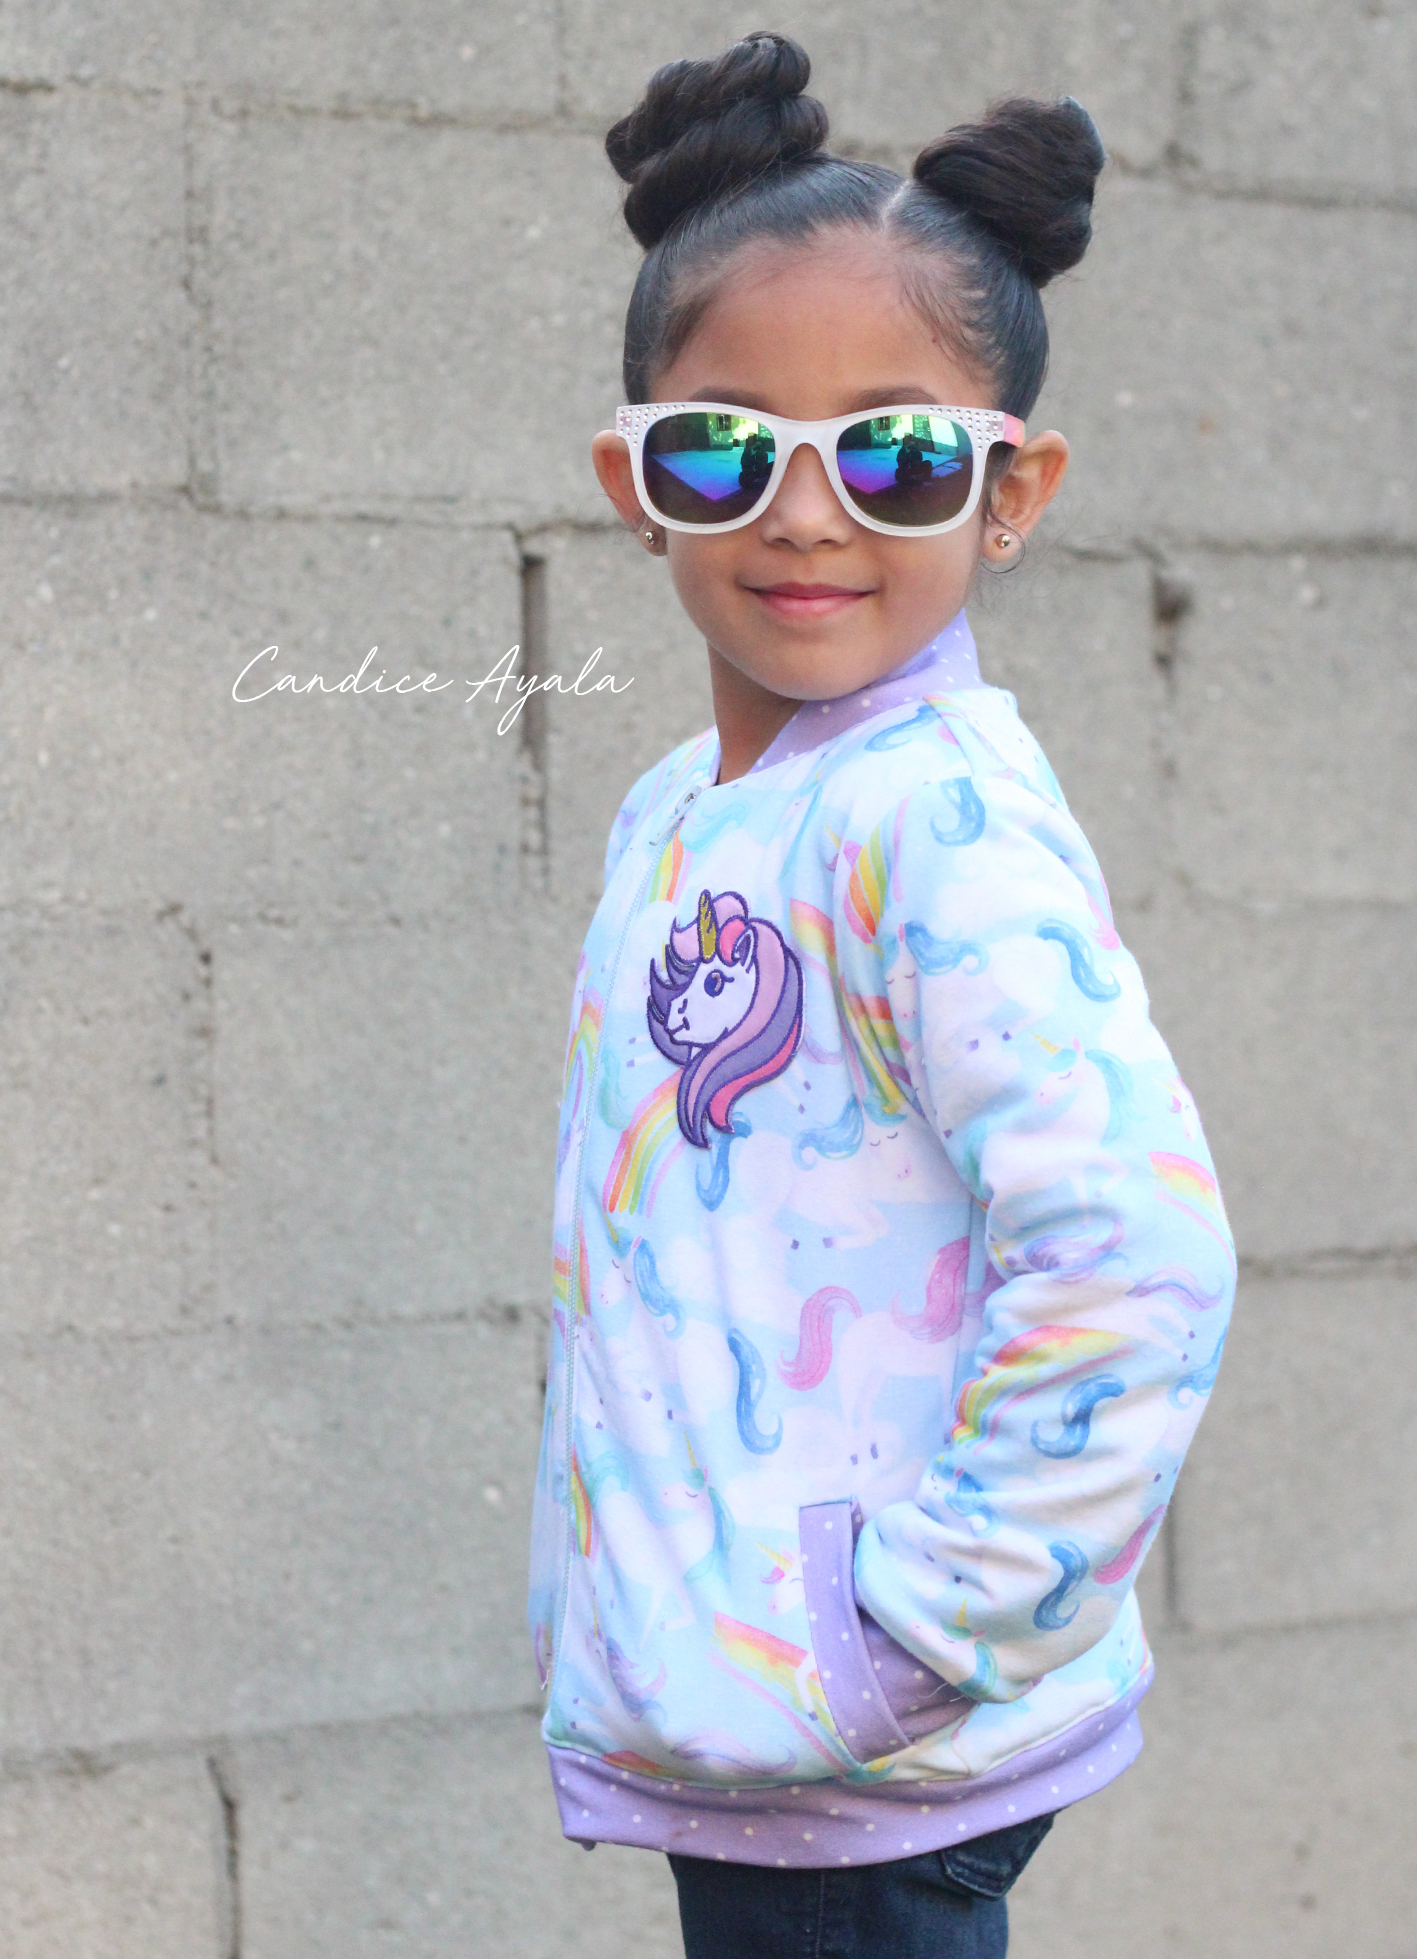 The Ollie Bomber Jacket PDF Pattern by Sew A Little Seam sewn by Candice Ayala.